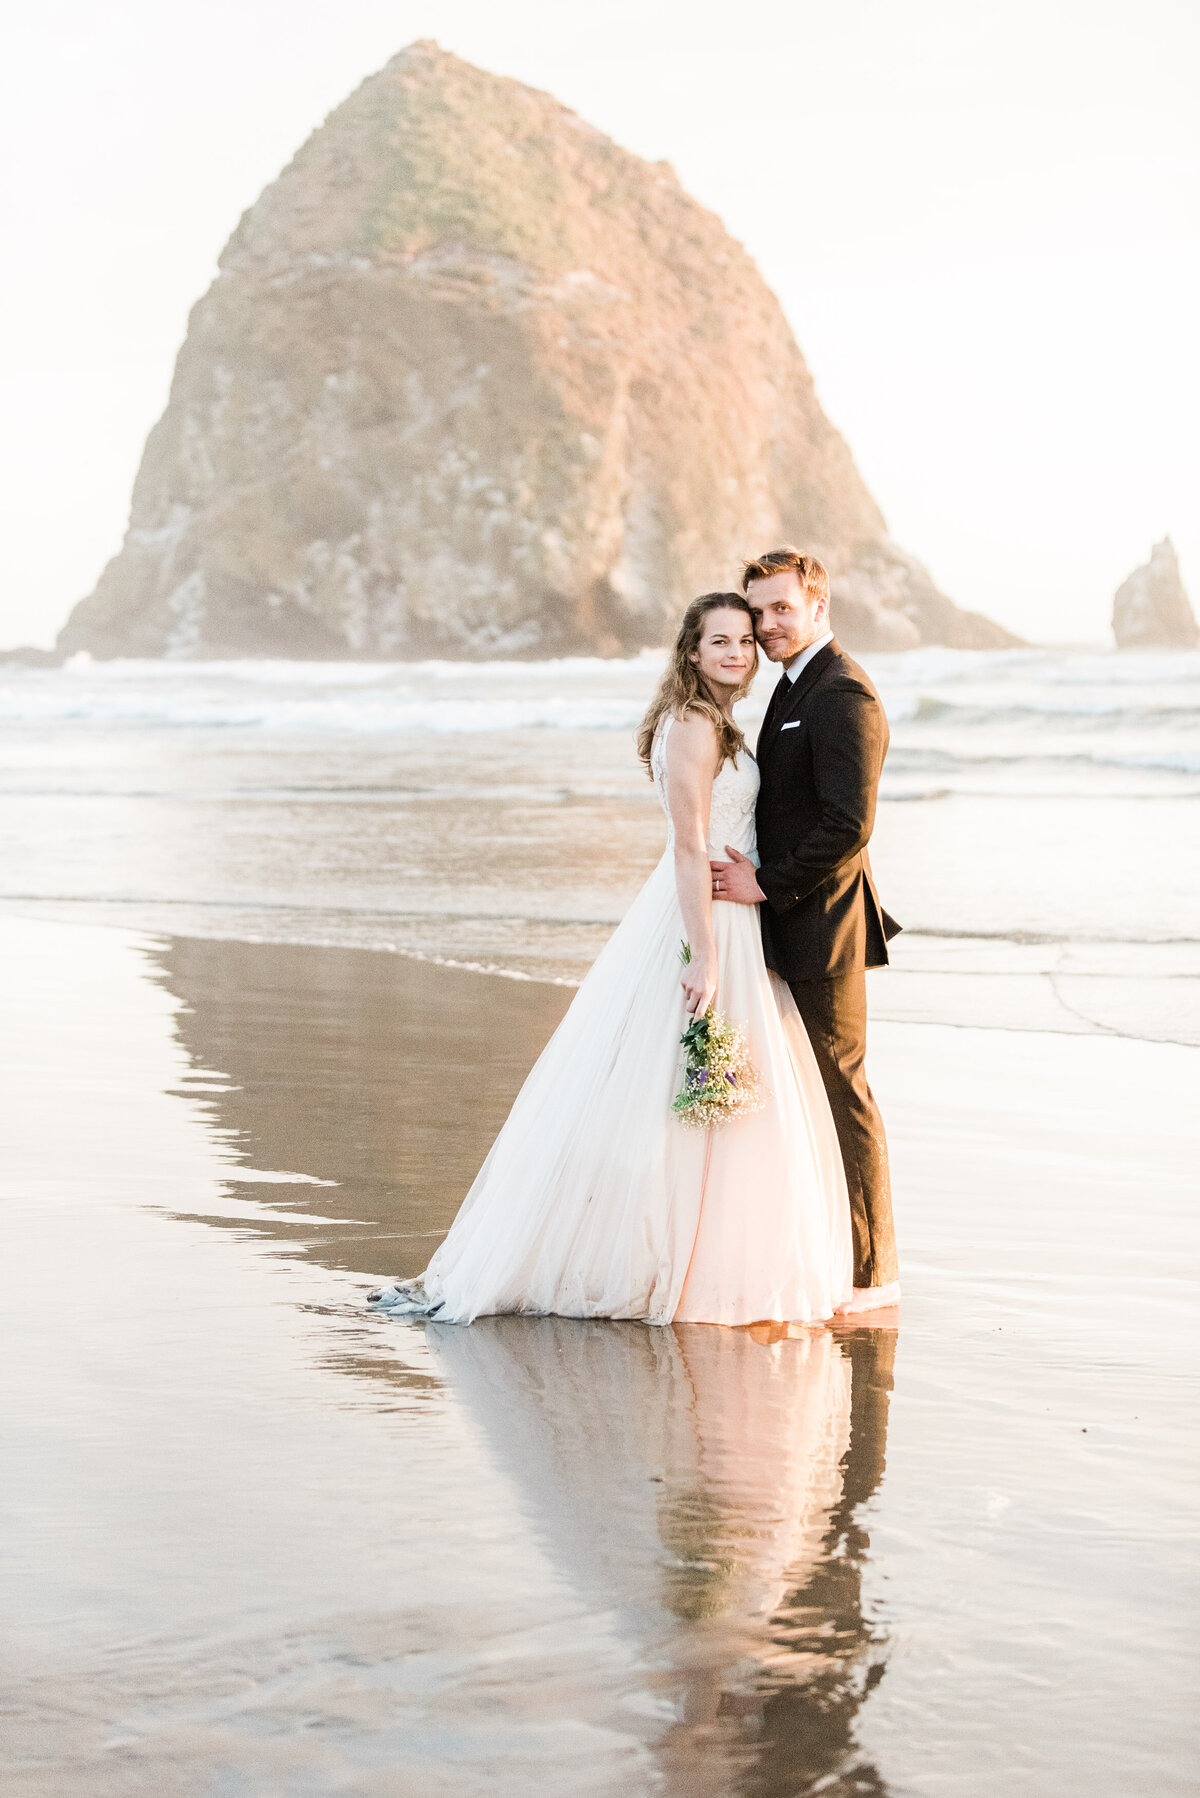 Cannon-Beach-Elopement-Photographer-65